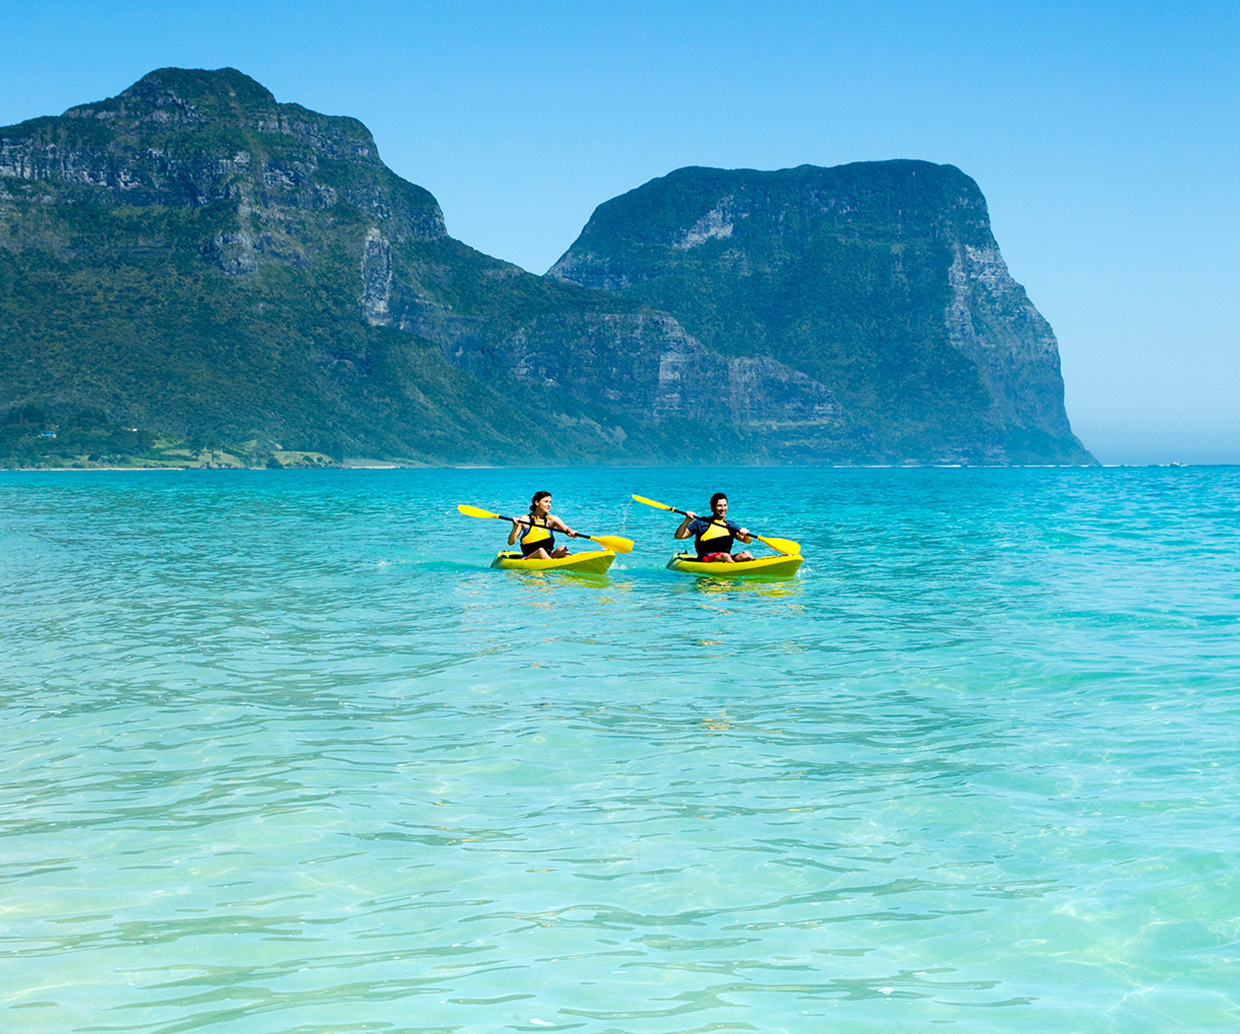 two people kayaking on crystal clear water